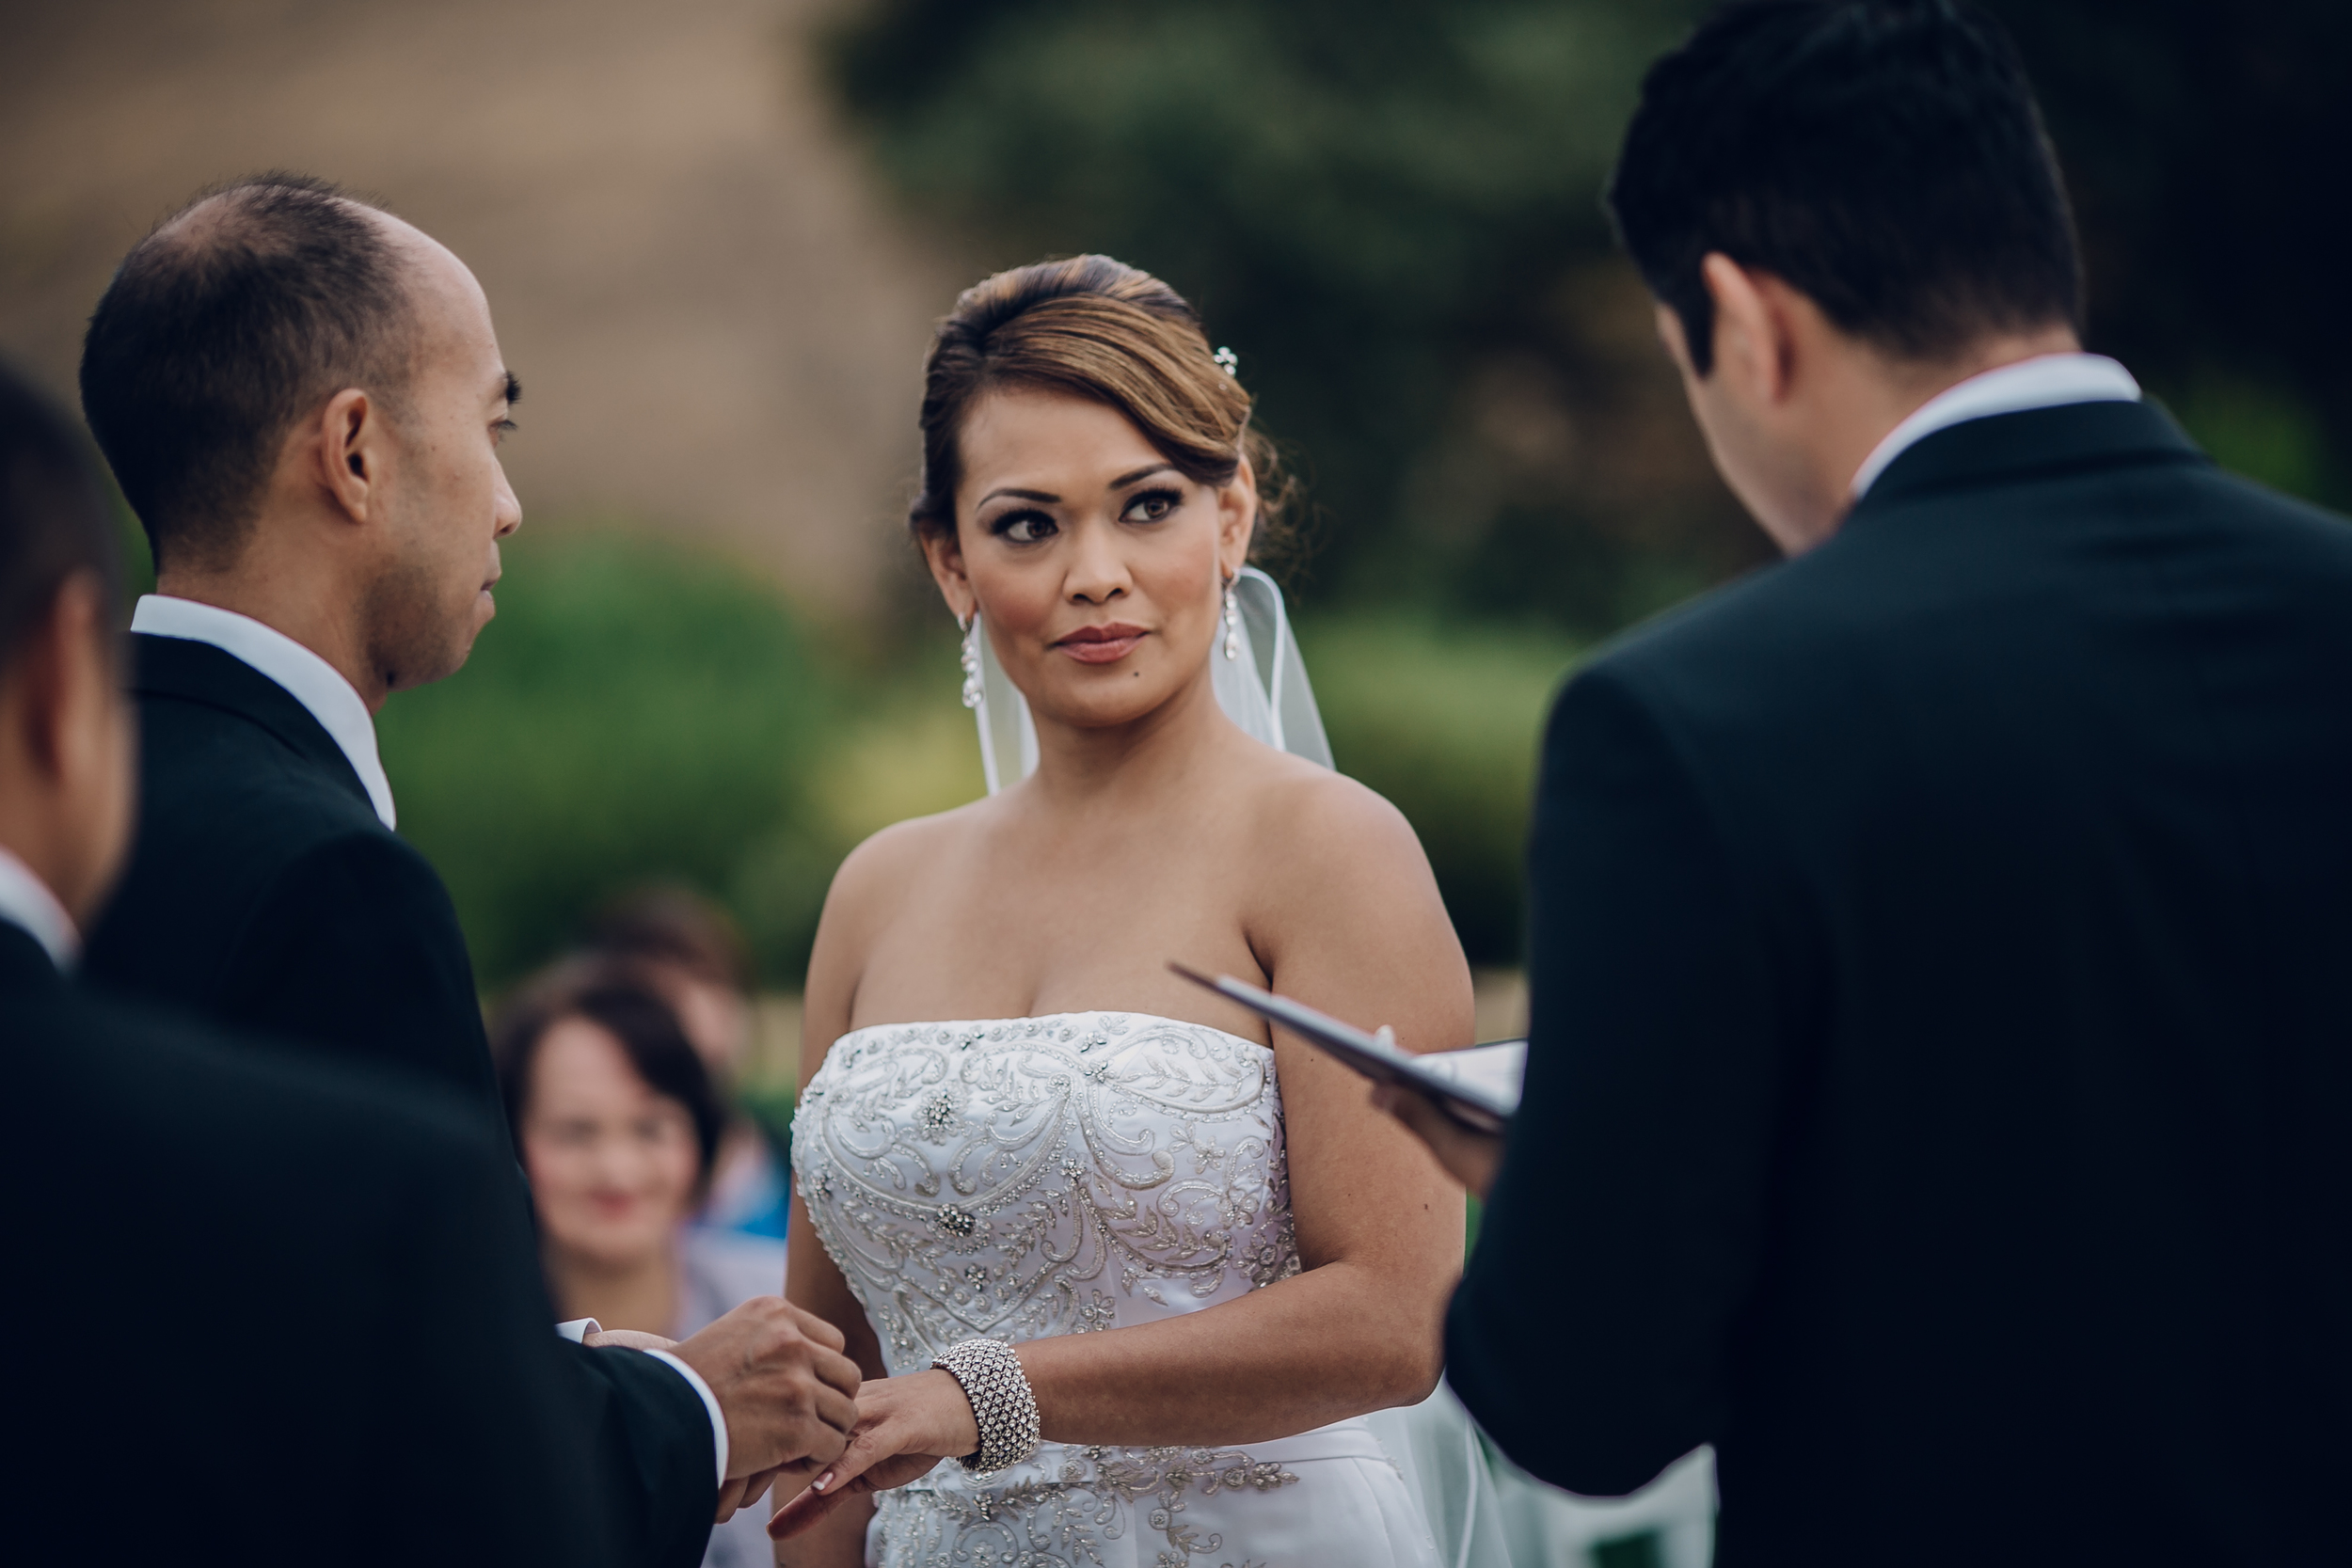 Shiela + Lester's Wedding 9-30-15 151-Edit.jpg